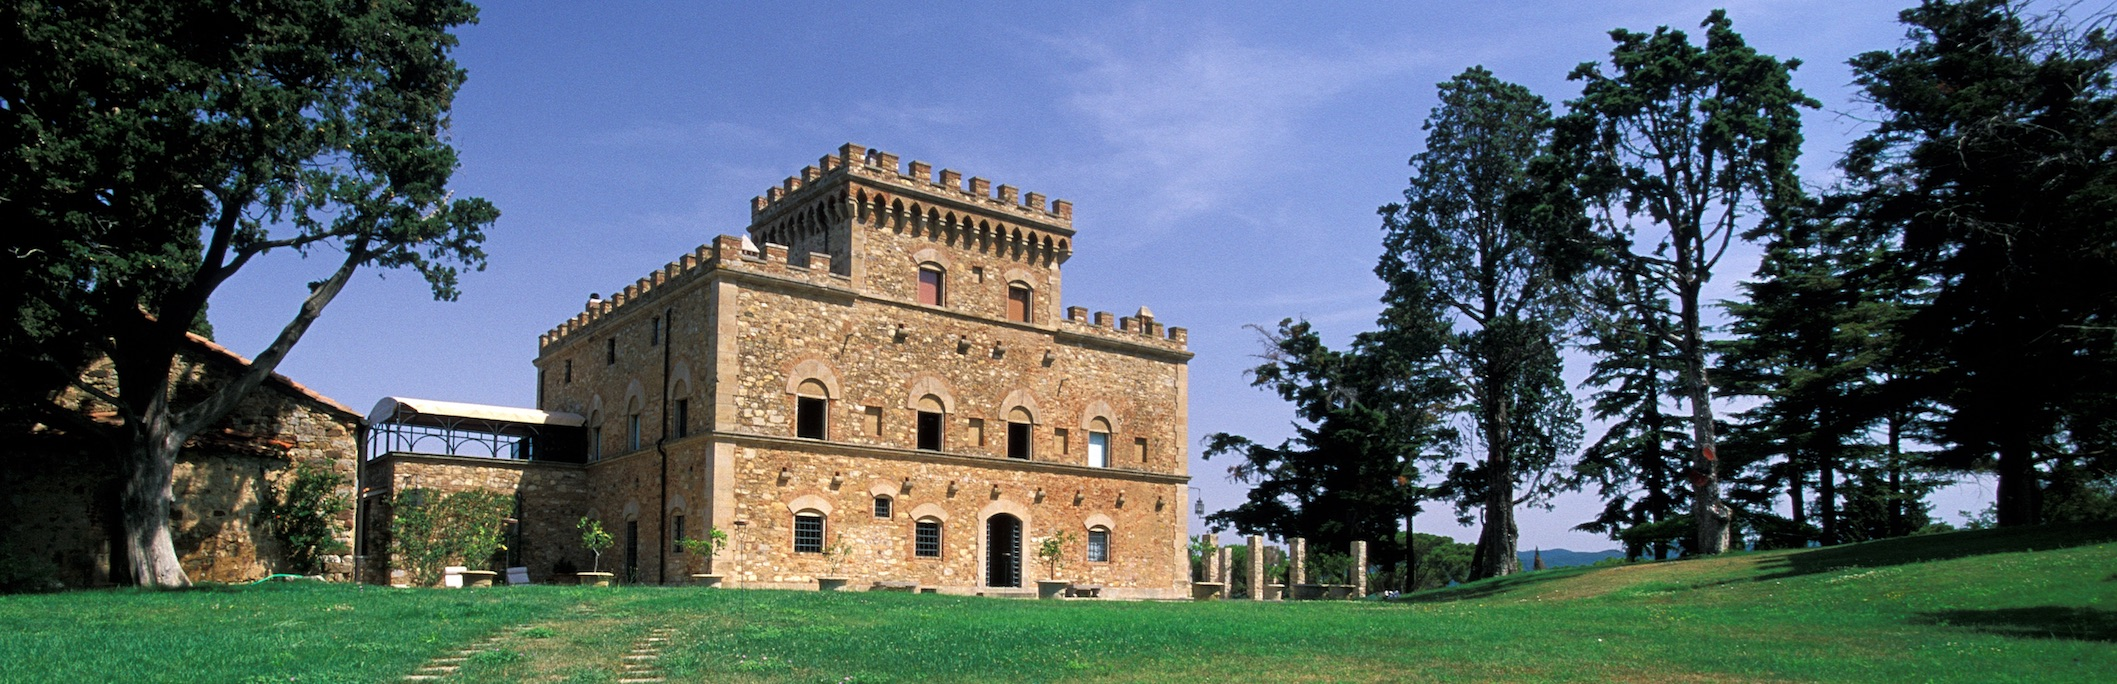 Castello_Header.jpg